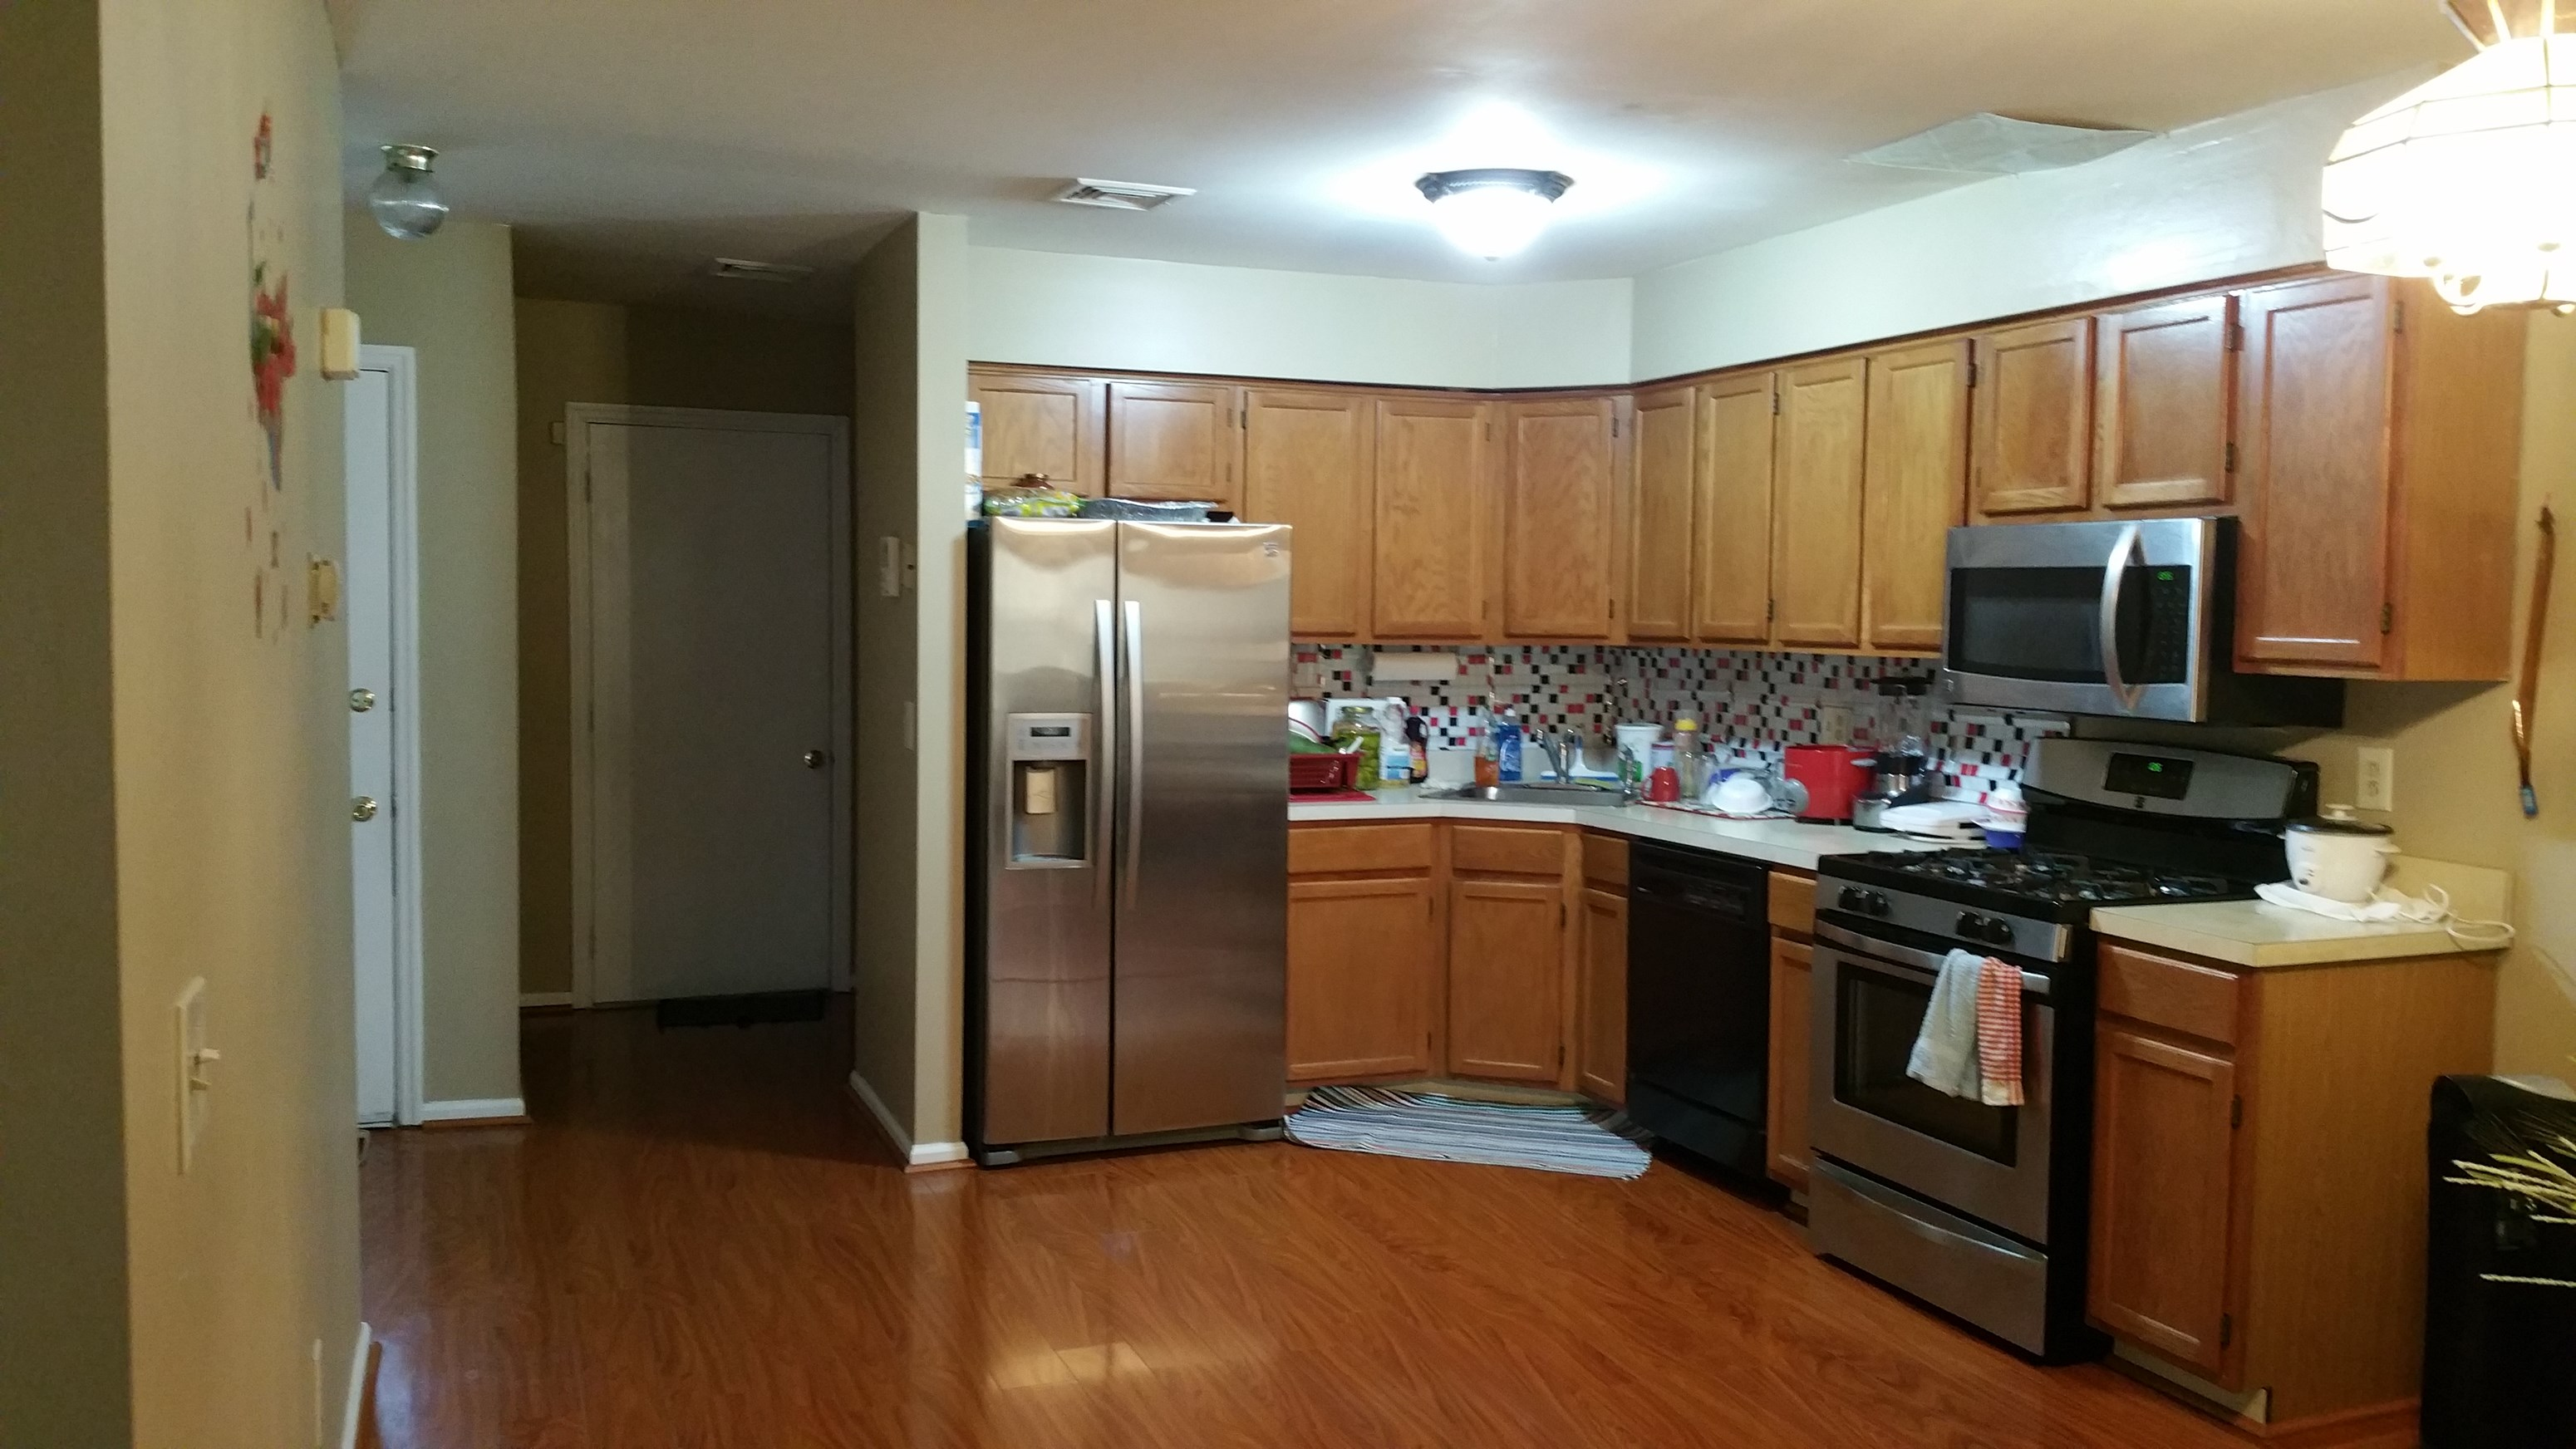 650 single basement room available in 3 bedroom and 2 5